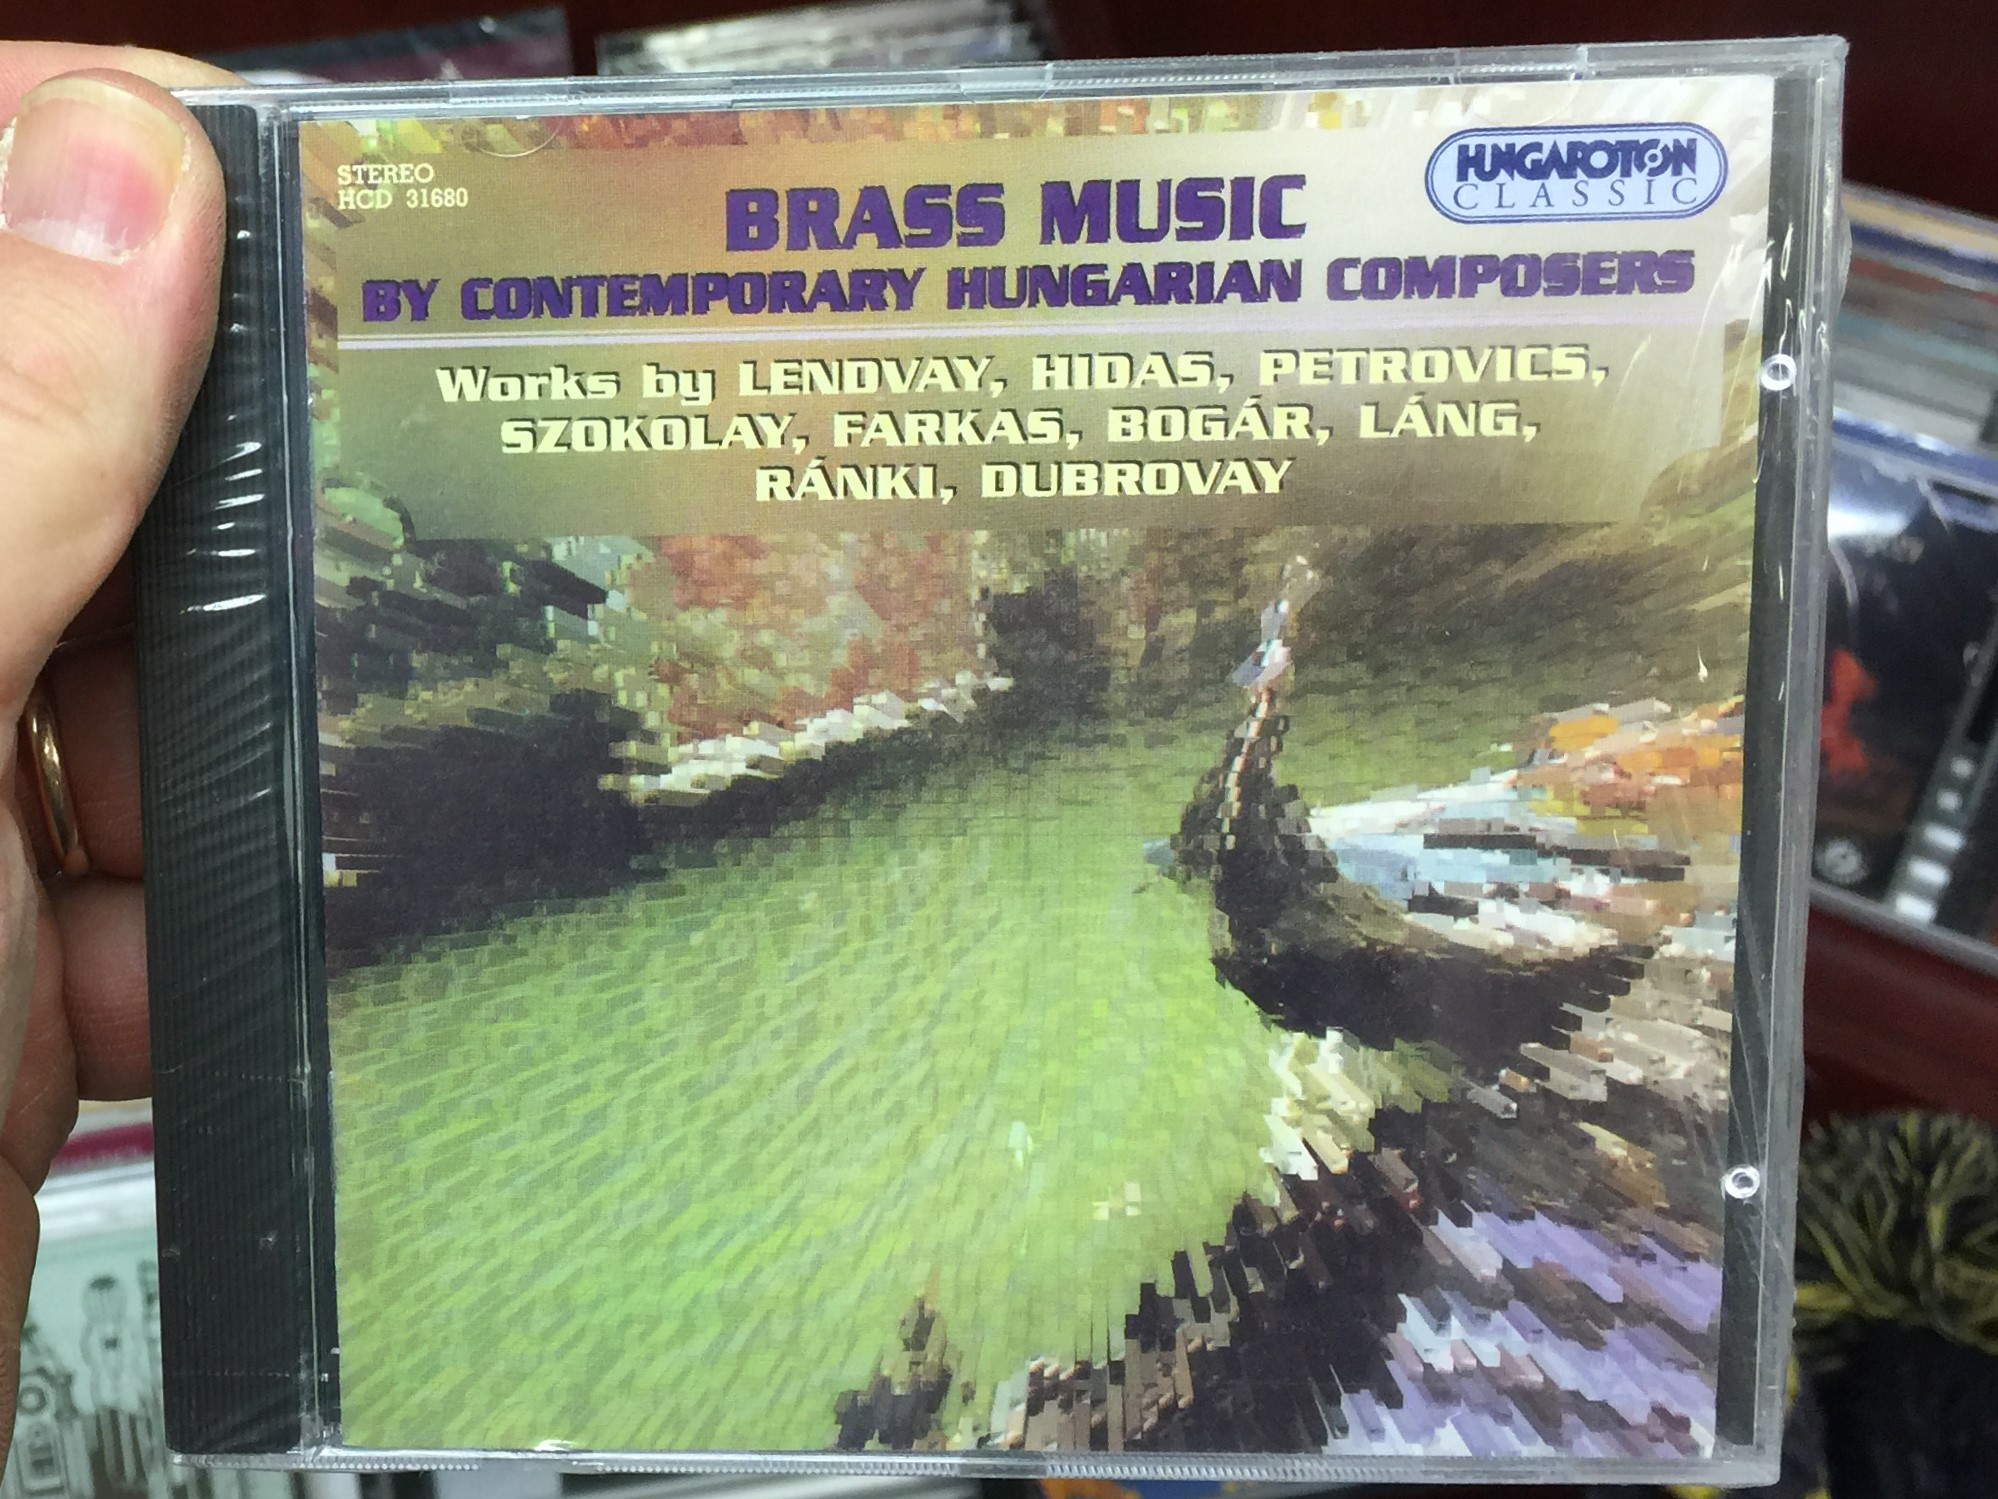 brass-music-by-contemporary-hungarian-composers-works-by-lendvay-hidas-petrovics-szokolay-farkas-bog-r-lang-r-nki-dubrovay-hungaroton-classic-audio-cd-1996-stereo-hcd-31680-1-.jpg